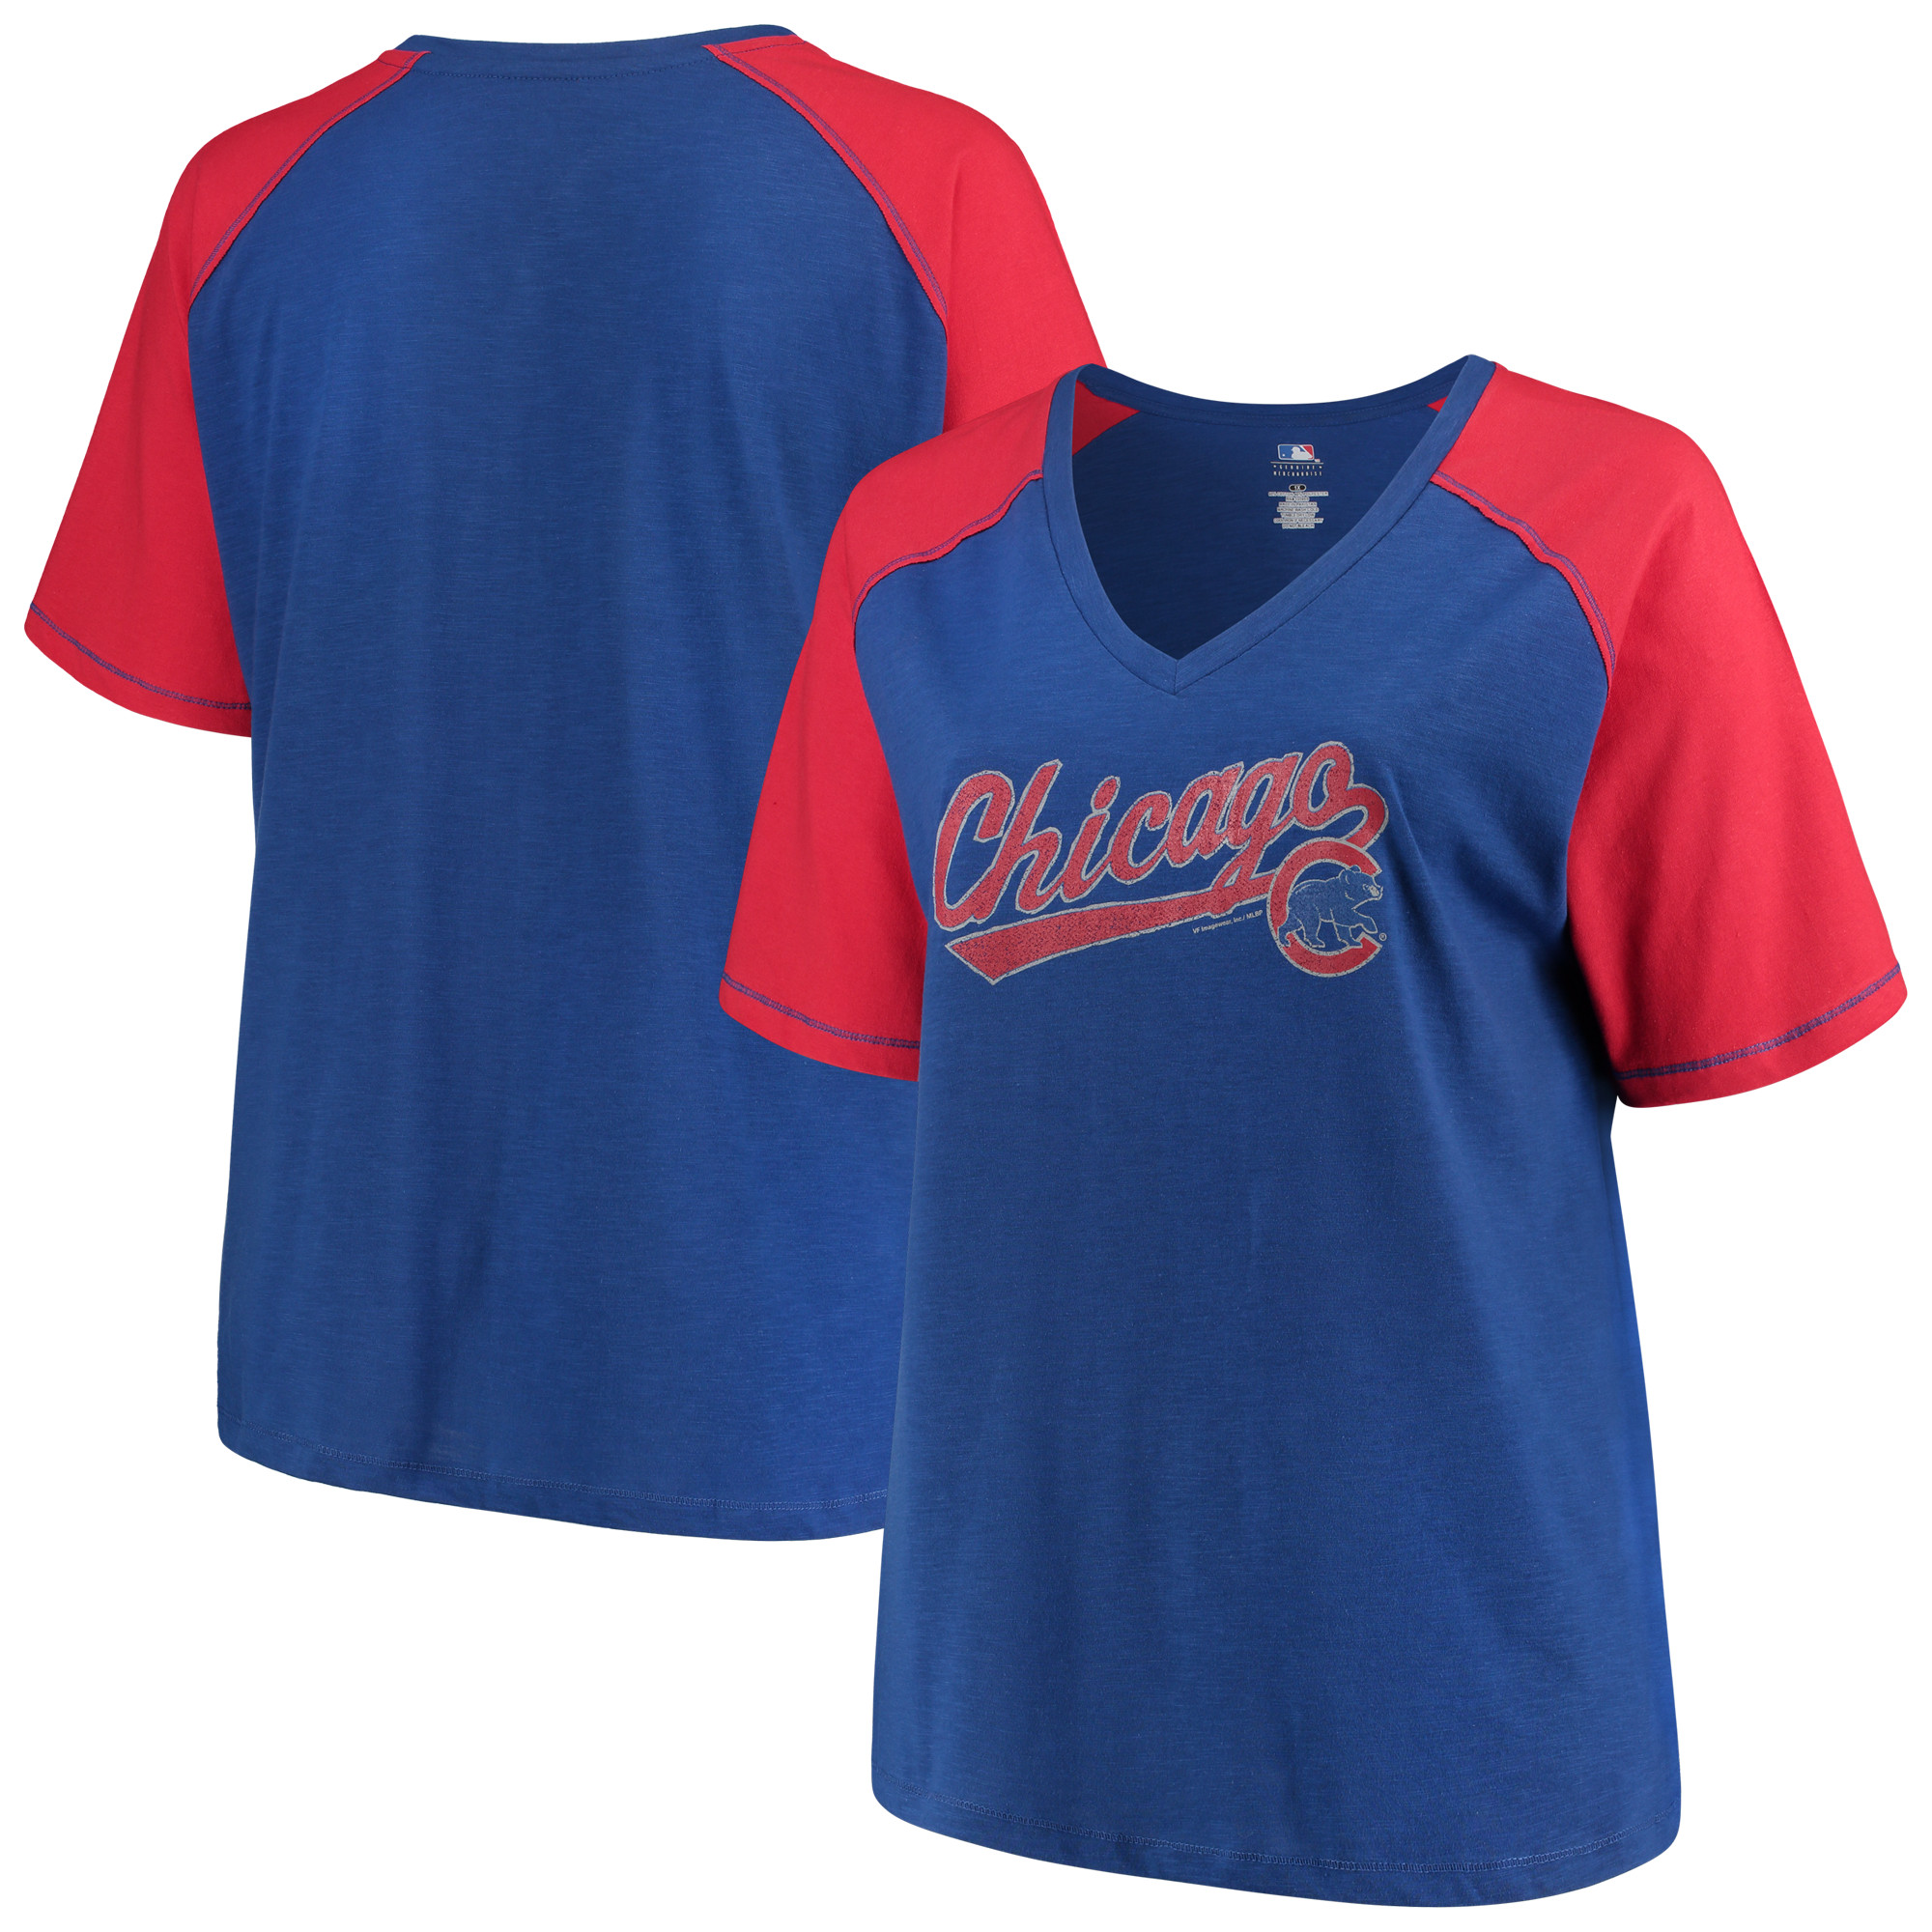 Women's Majestic Royal/Red Chicago Cubs Plus Size High Percentage Raglan V-Neck T-Shirt